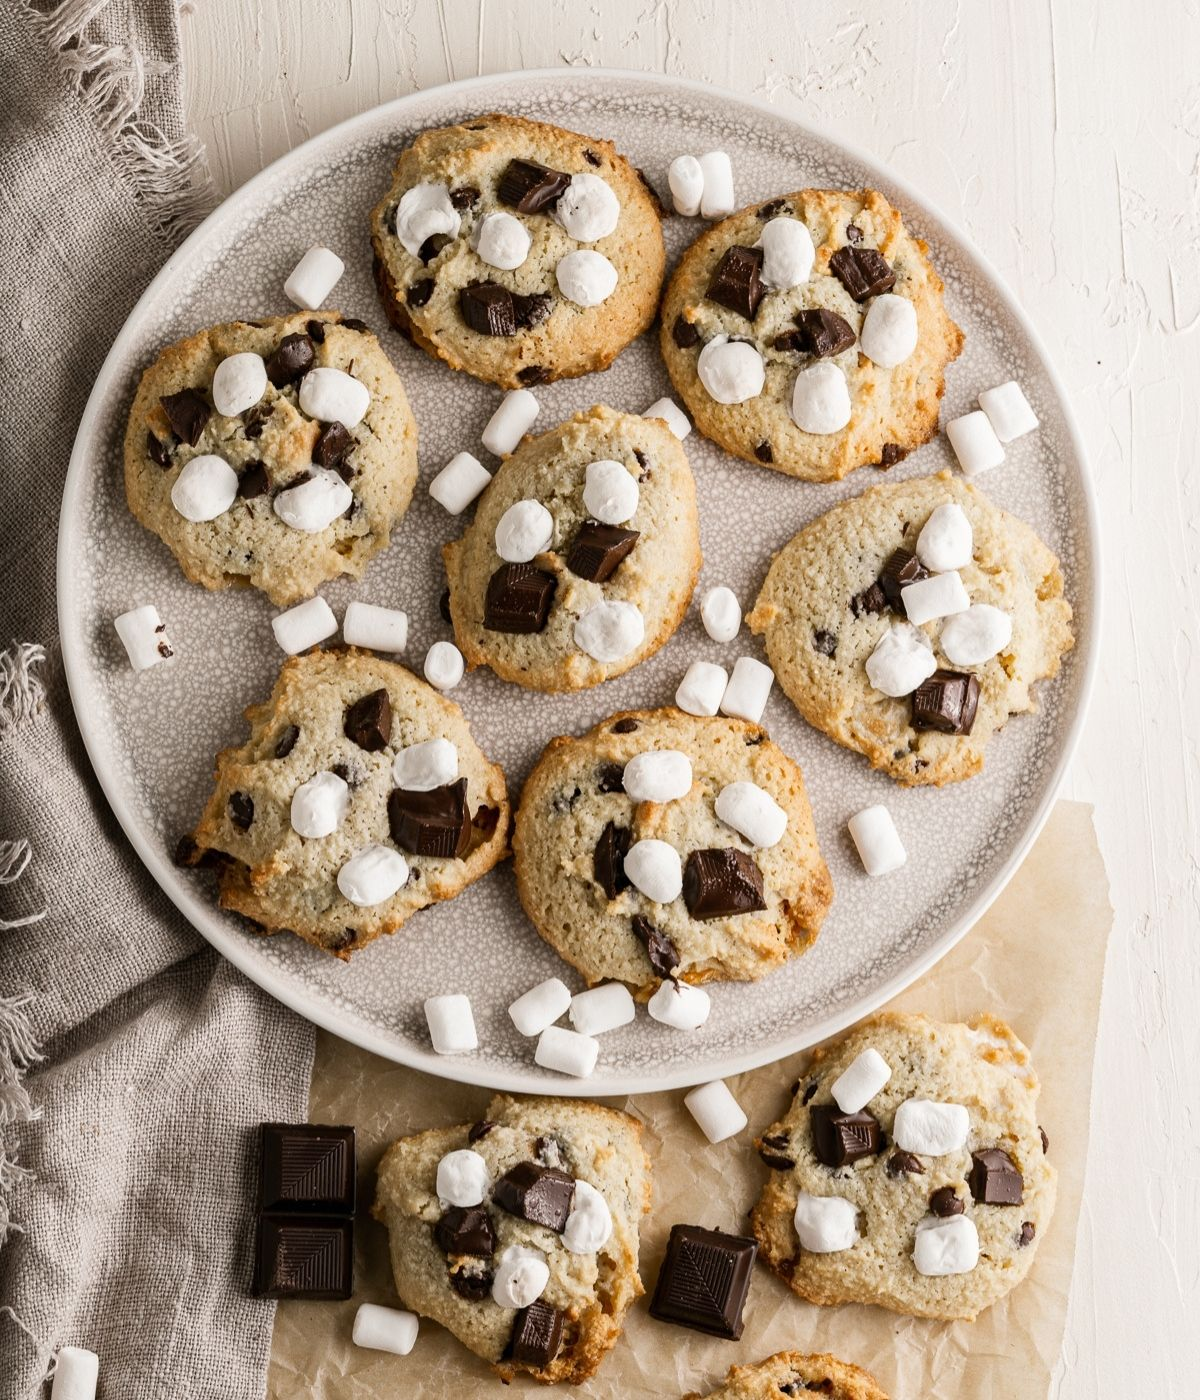 smores cookies made on a plate